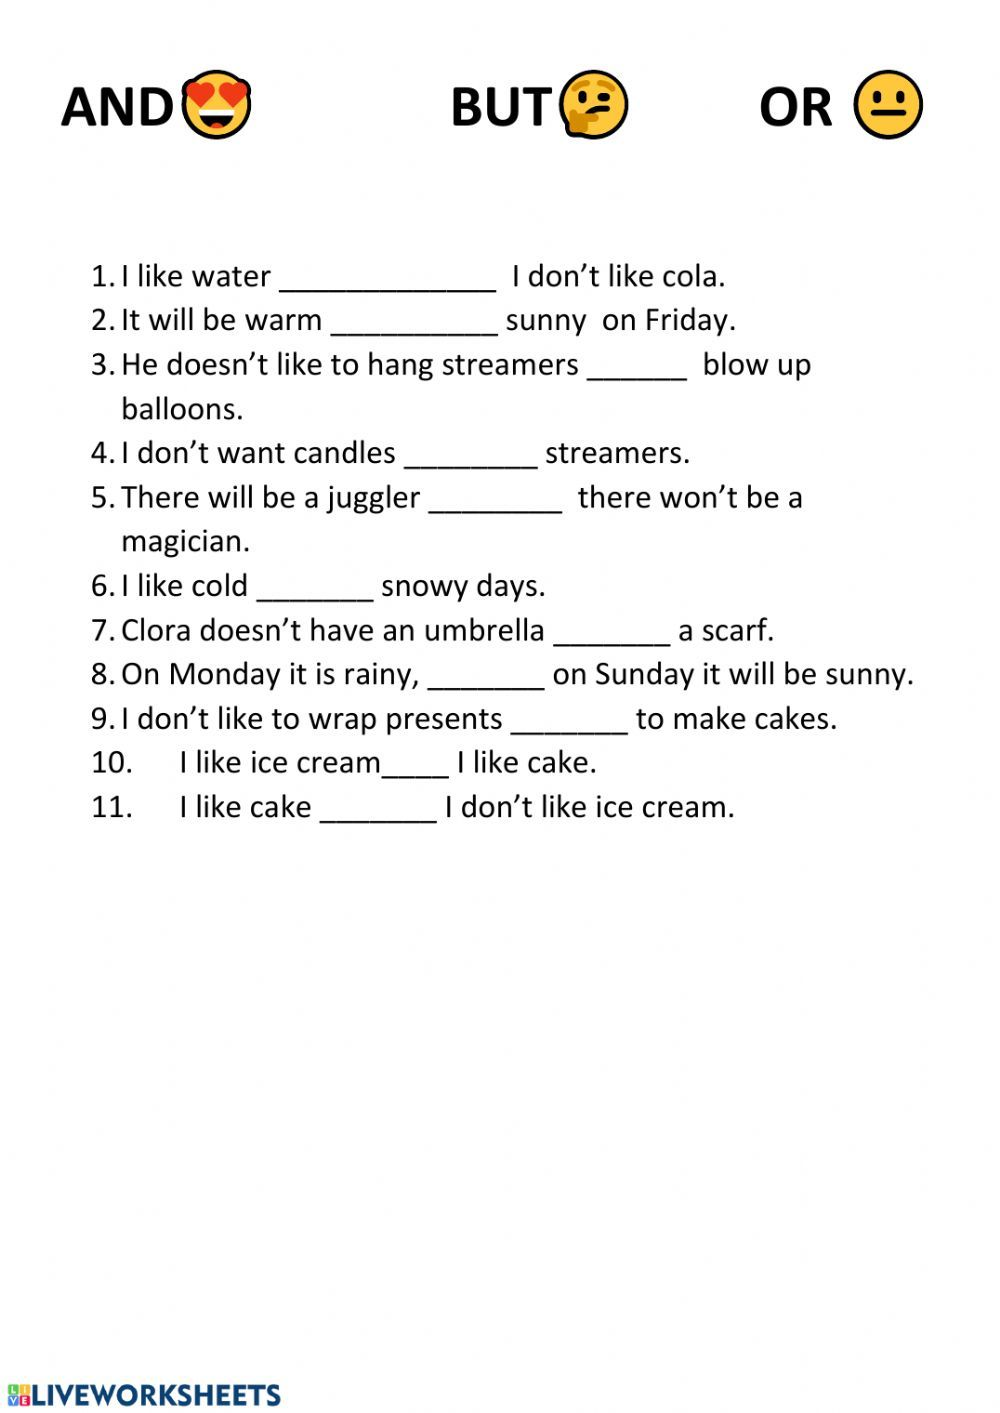 Linking words interactive and downloadable worksheet. You